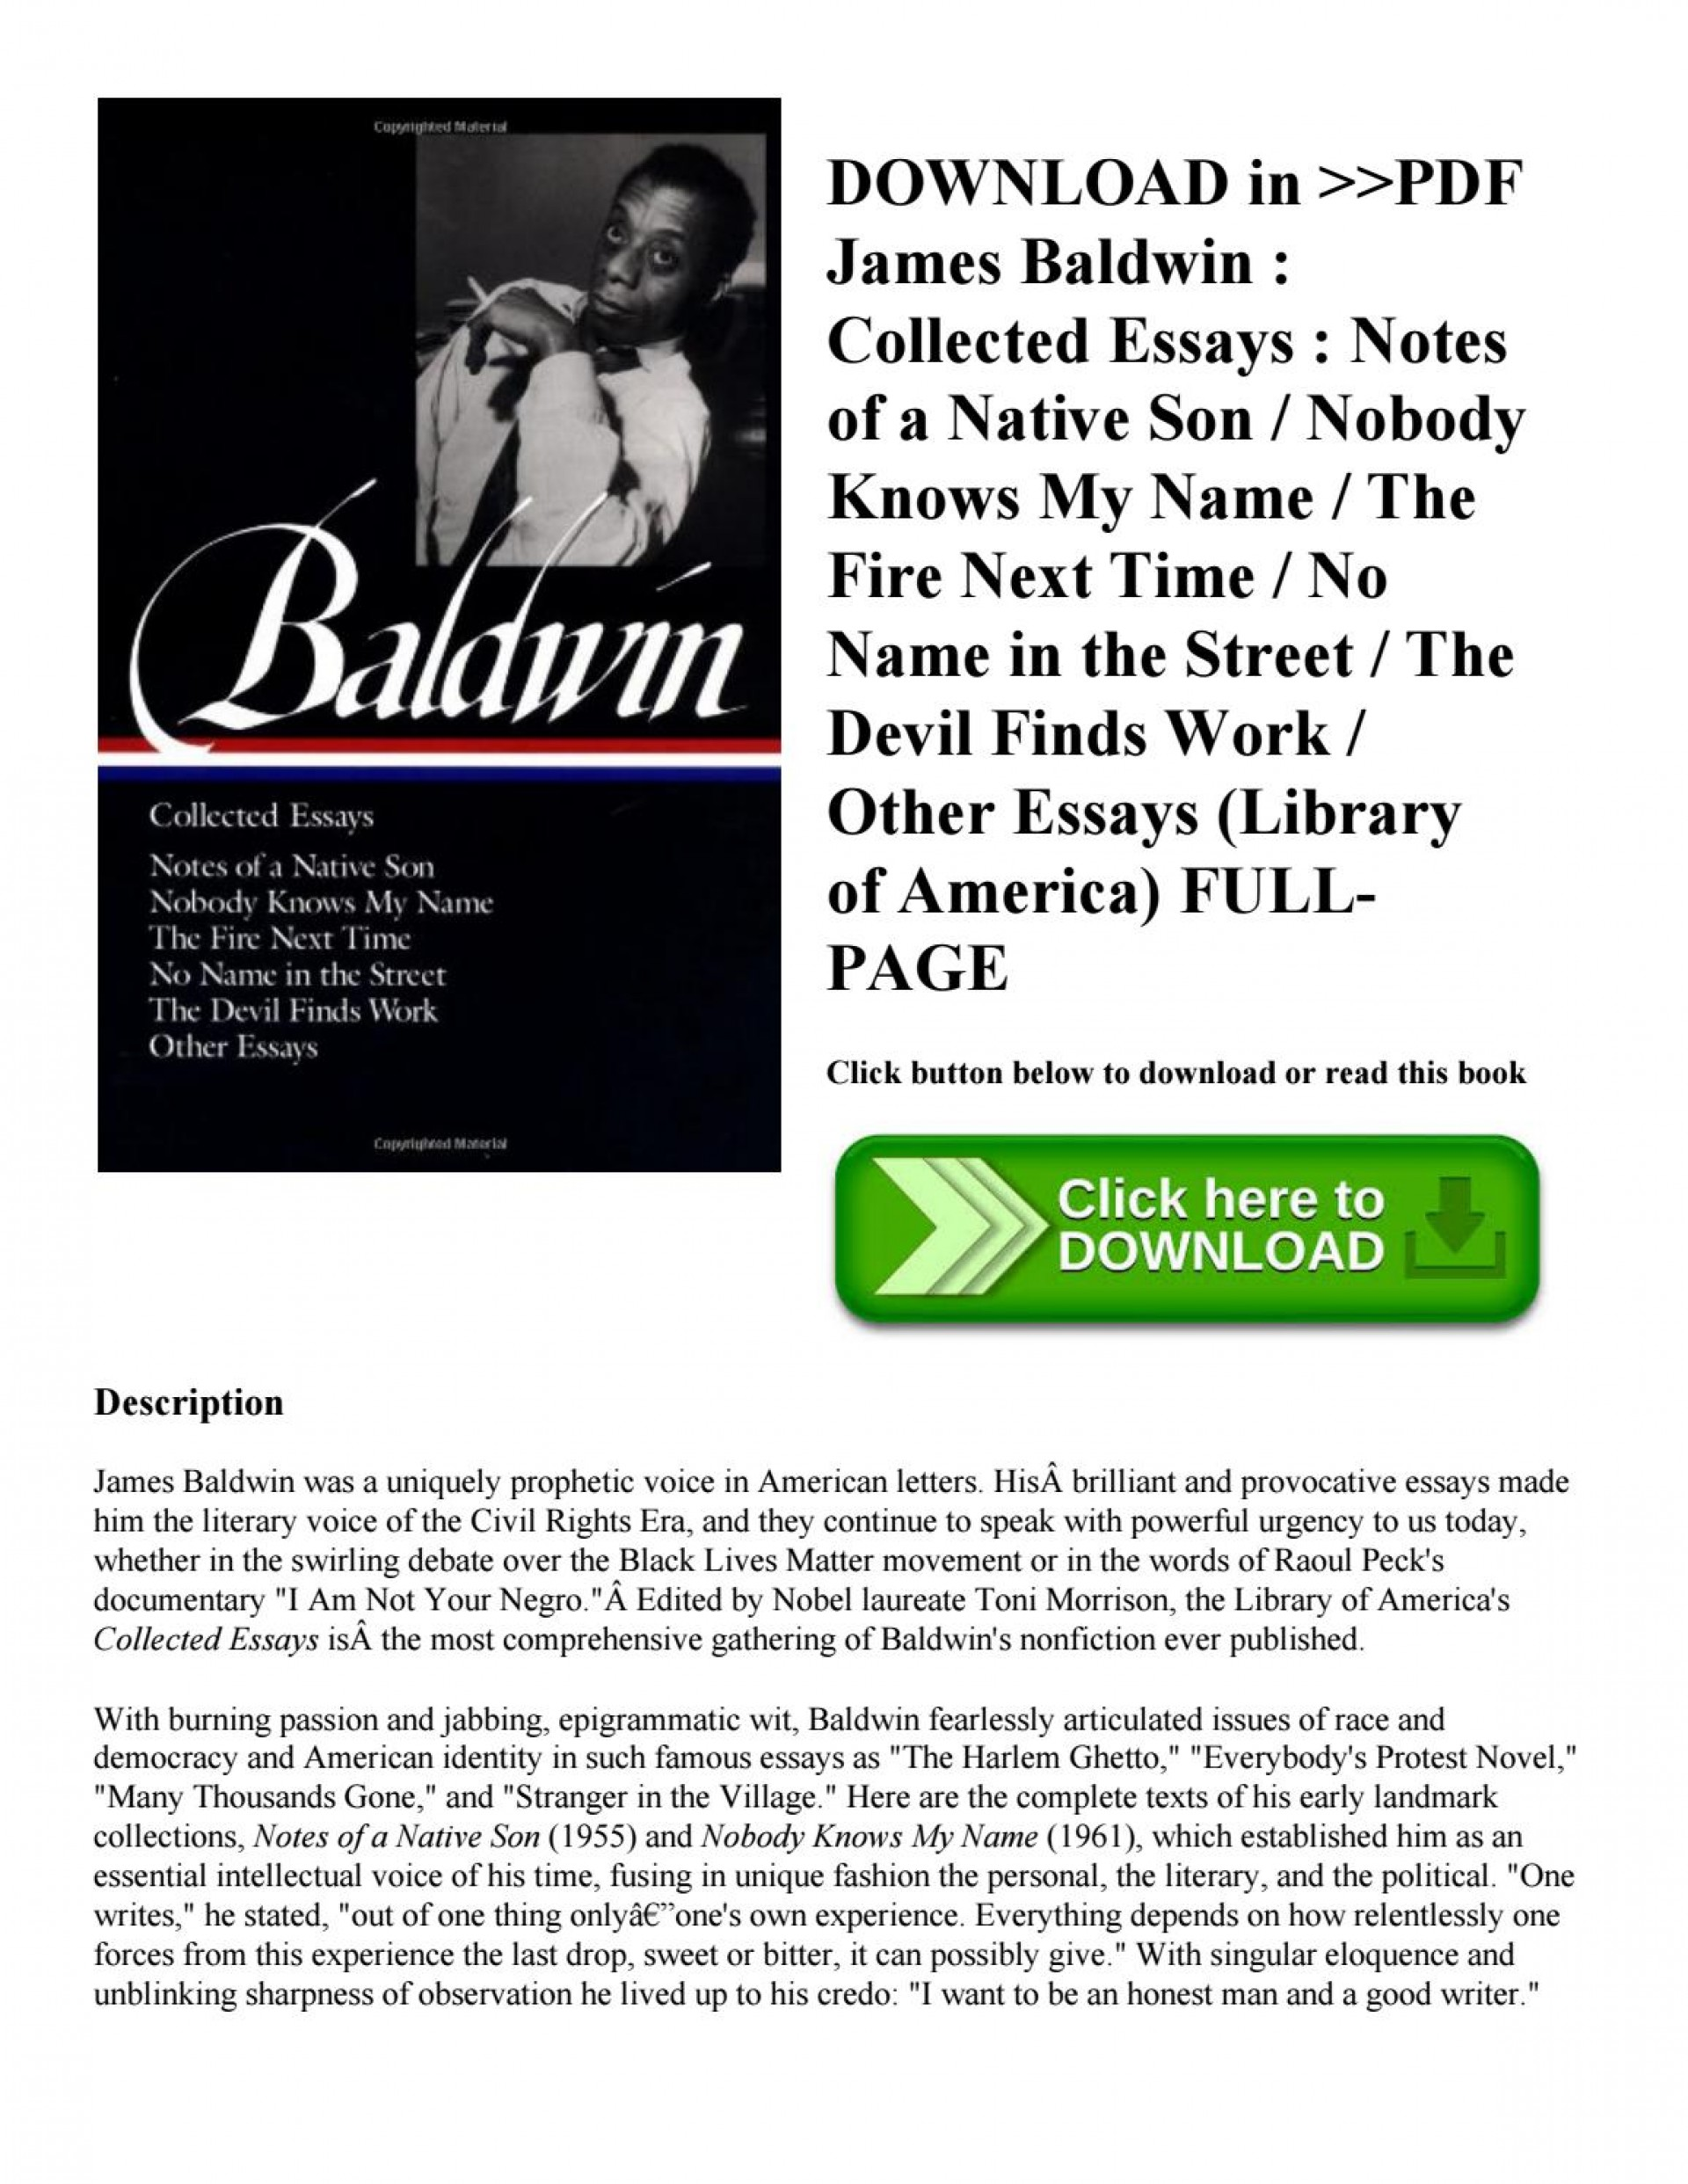 001 James Baldwin Essays Pdf Page 1 Essay Imposing 1920